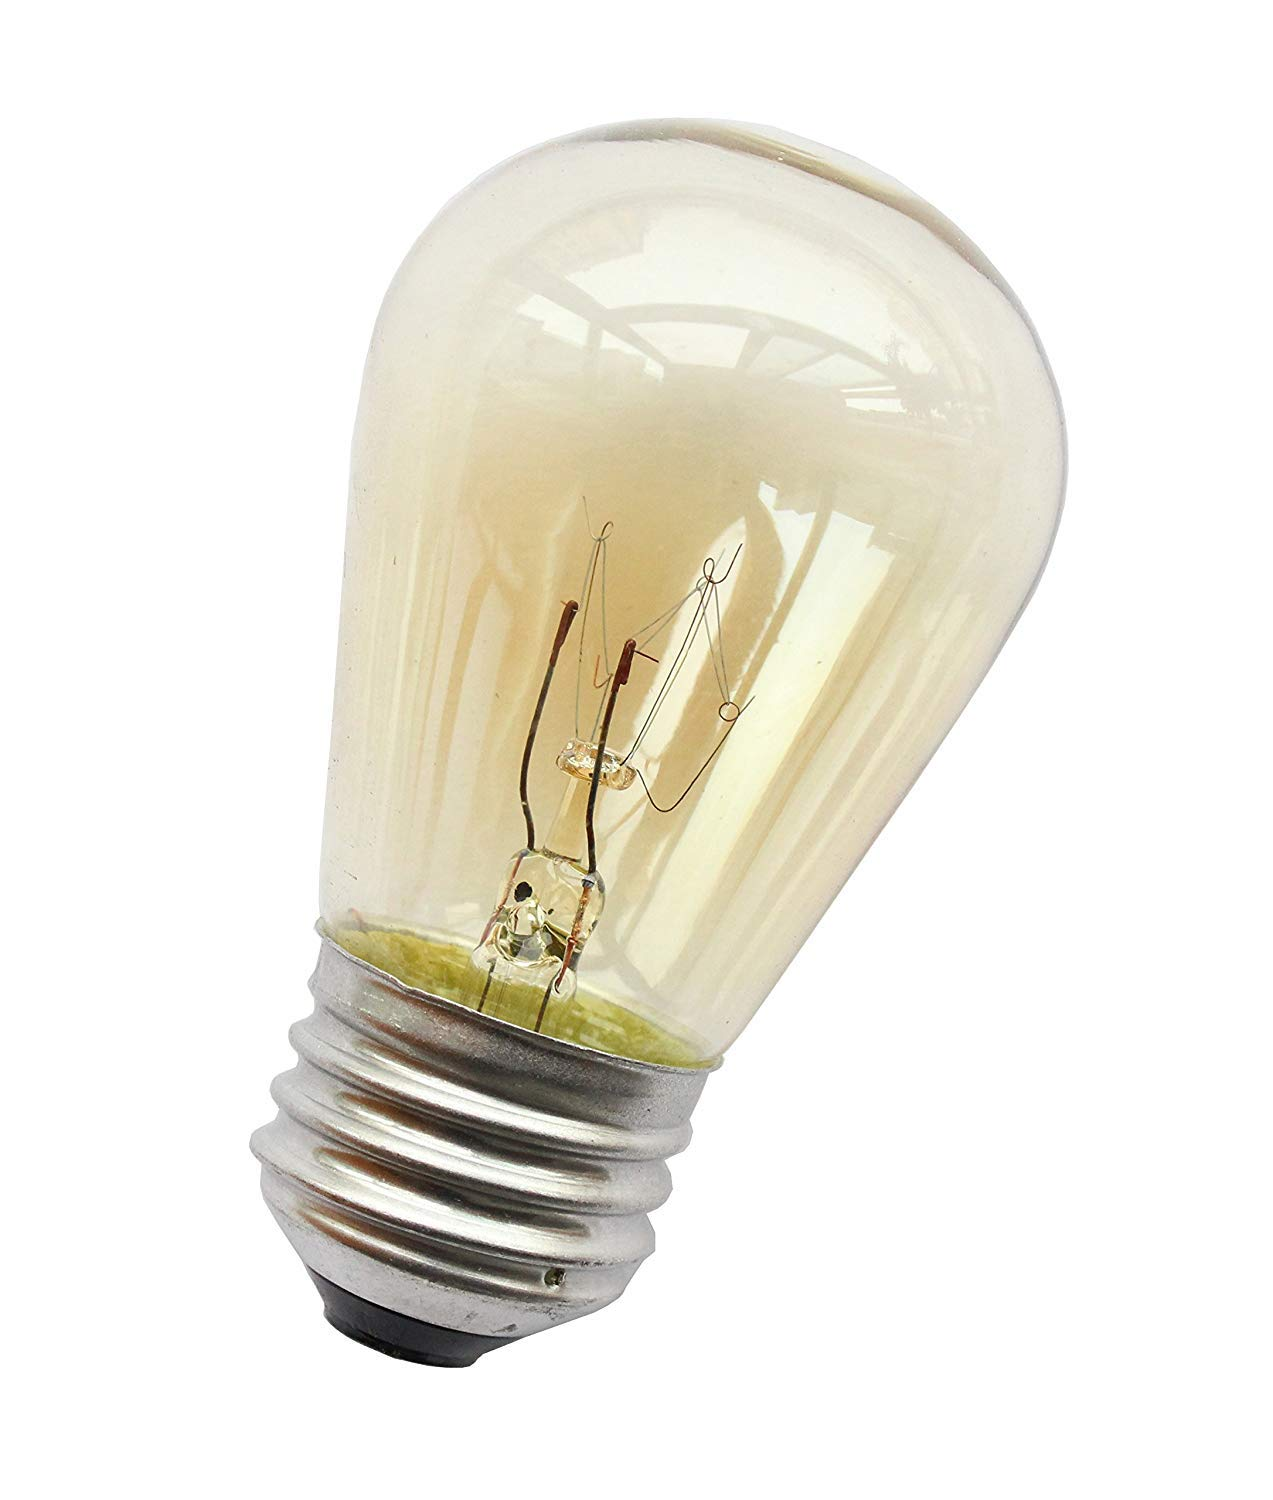 Feit String Light /& Sign Replacement S14 Bulbs Incandescent 2,700K Clear 24-pack